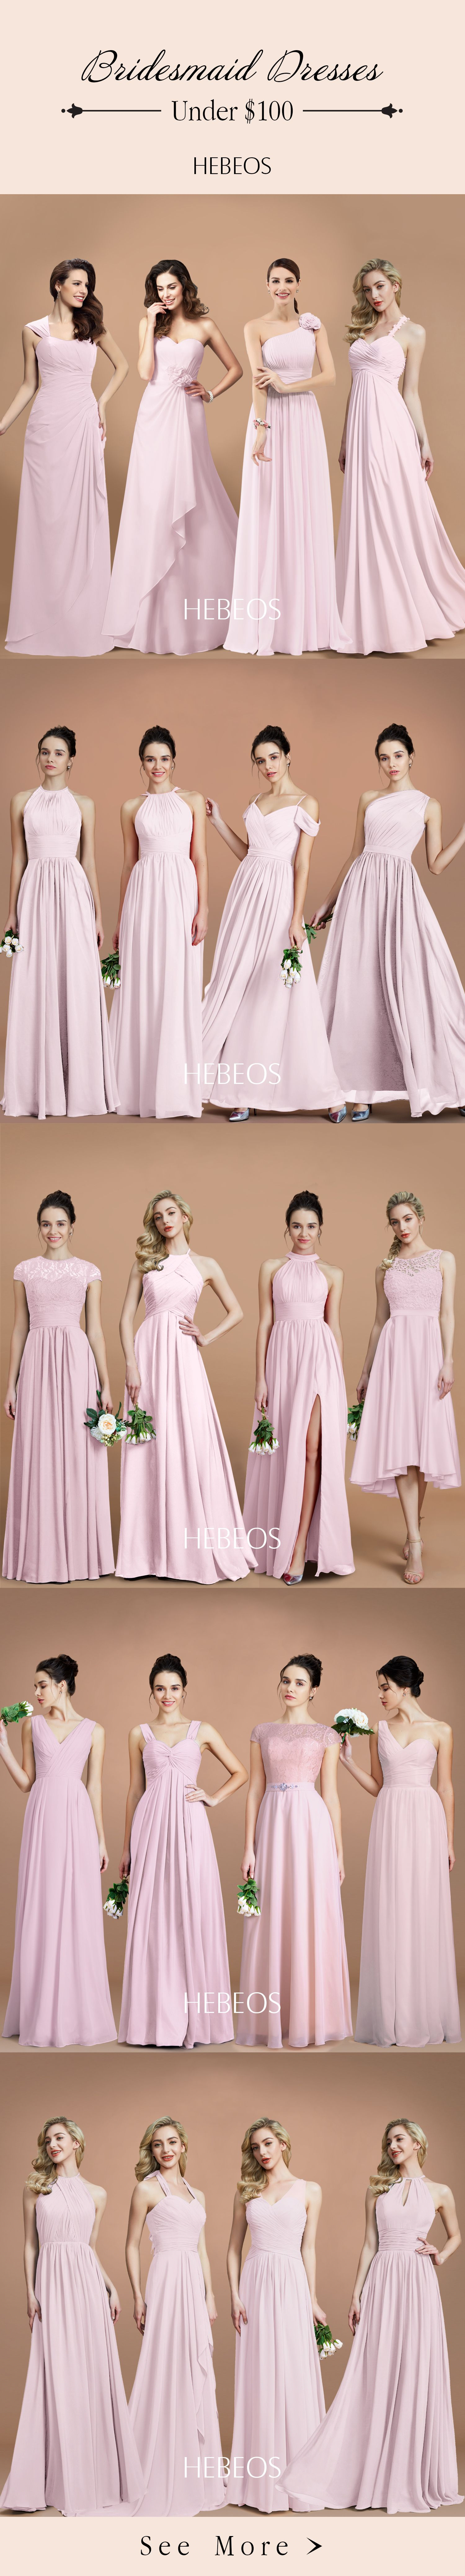 Searching for pink or coral bridesmaid dresses shop at hebeos searching for pink or coral bridesmaid dresses shop at hebeos to find stunning ombrellifo Gallery